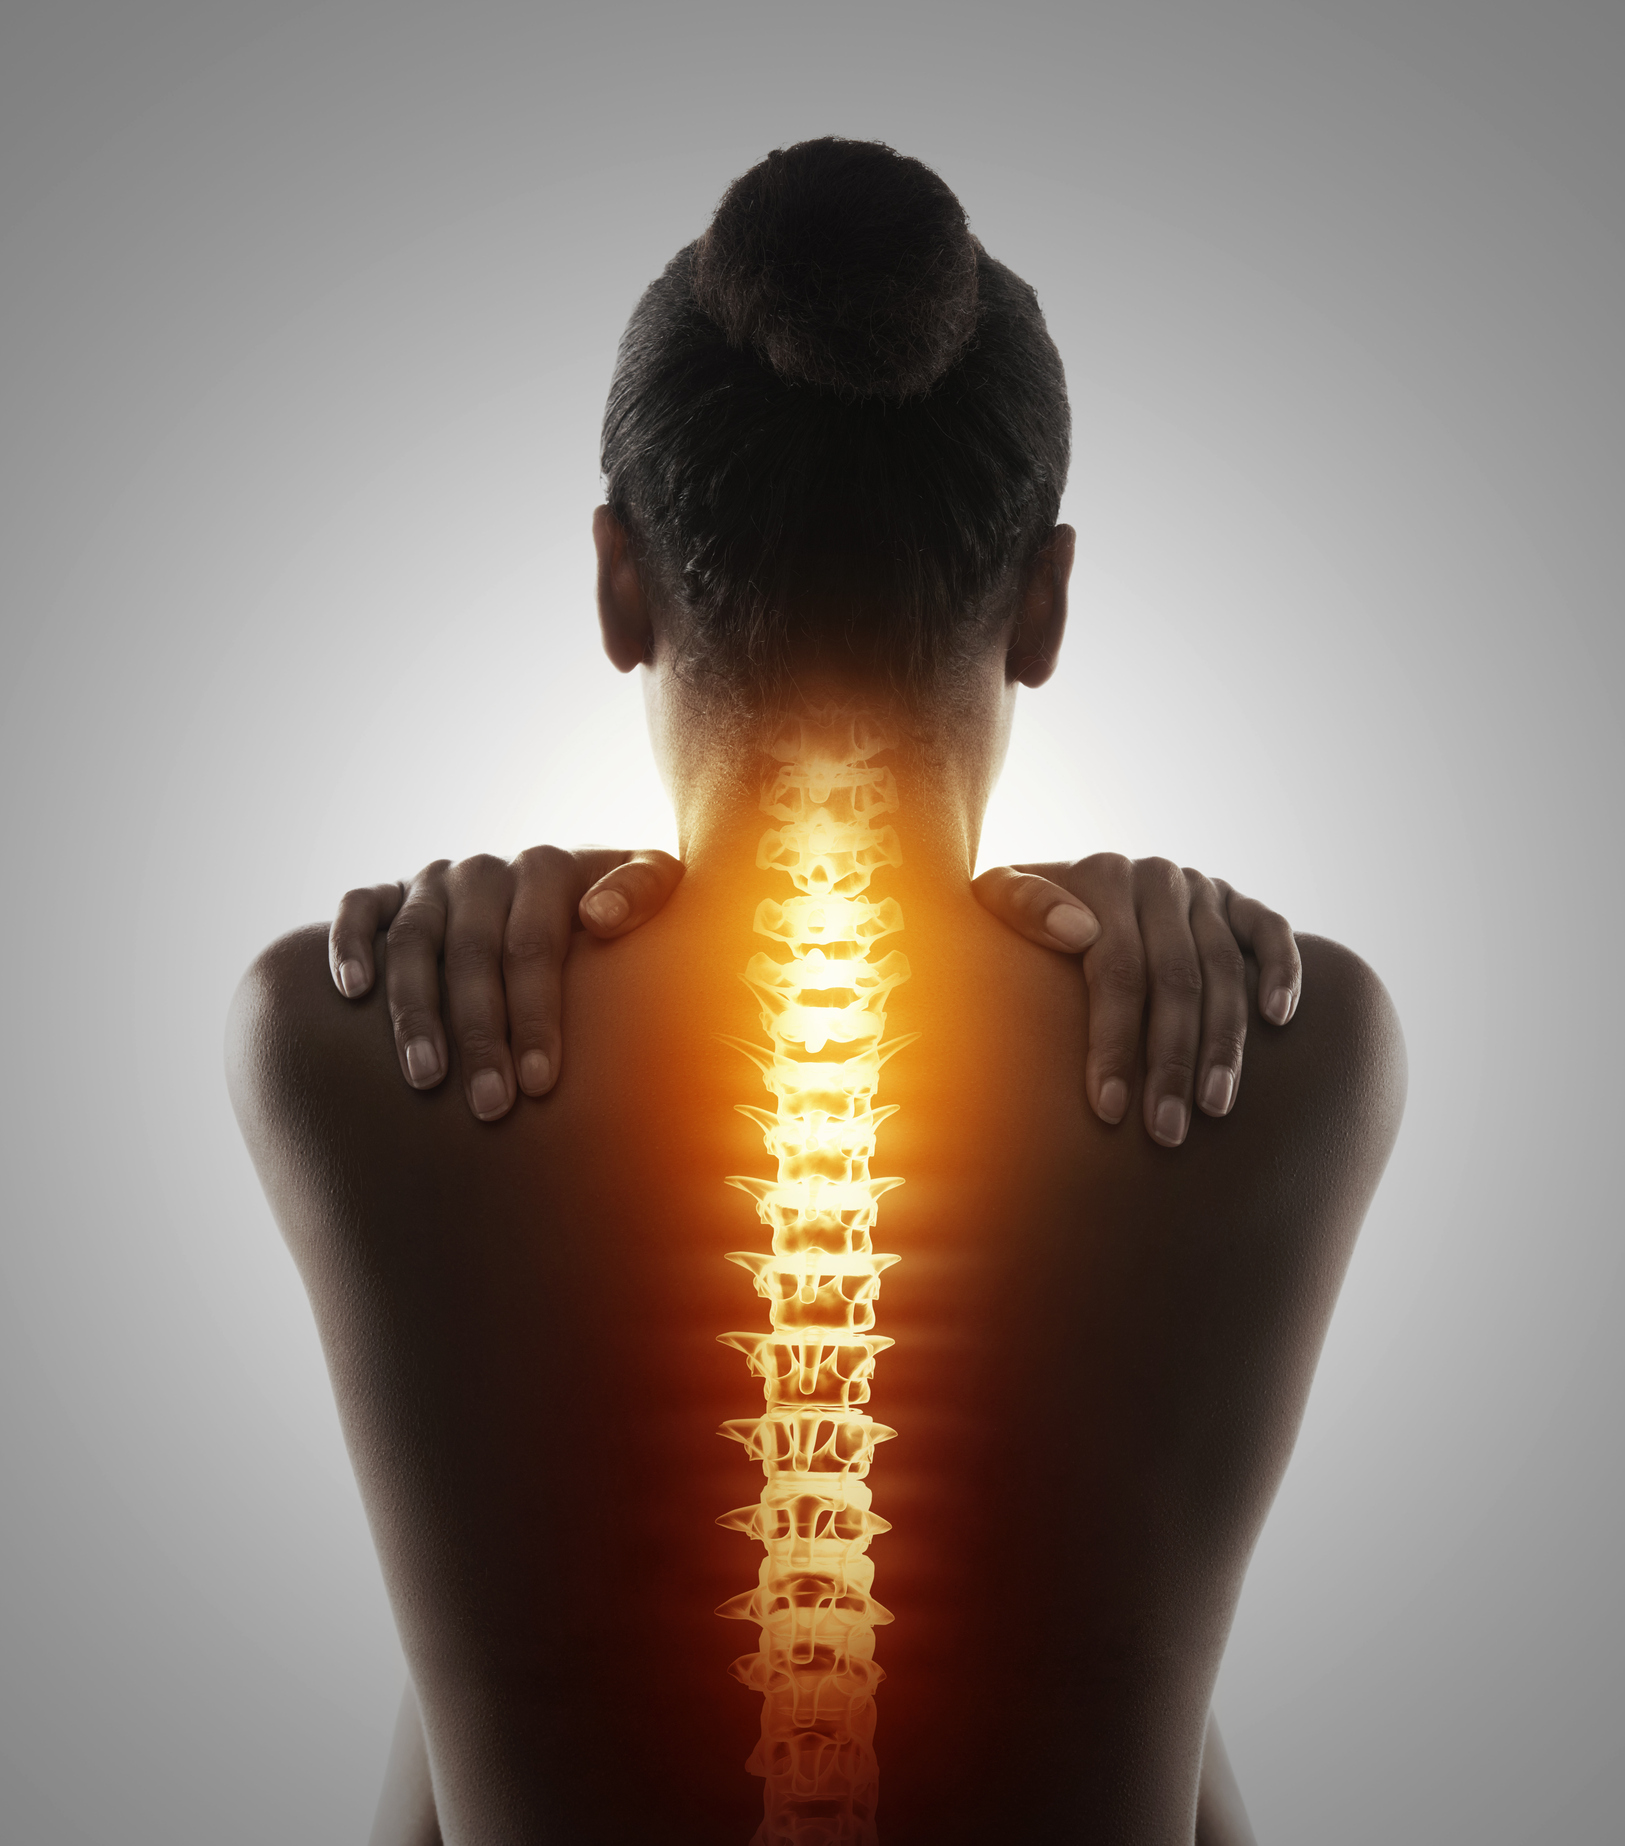 Backpain is a major problem for adults